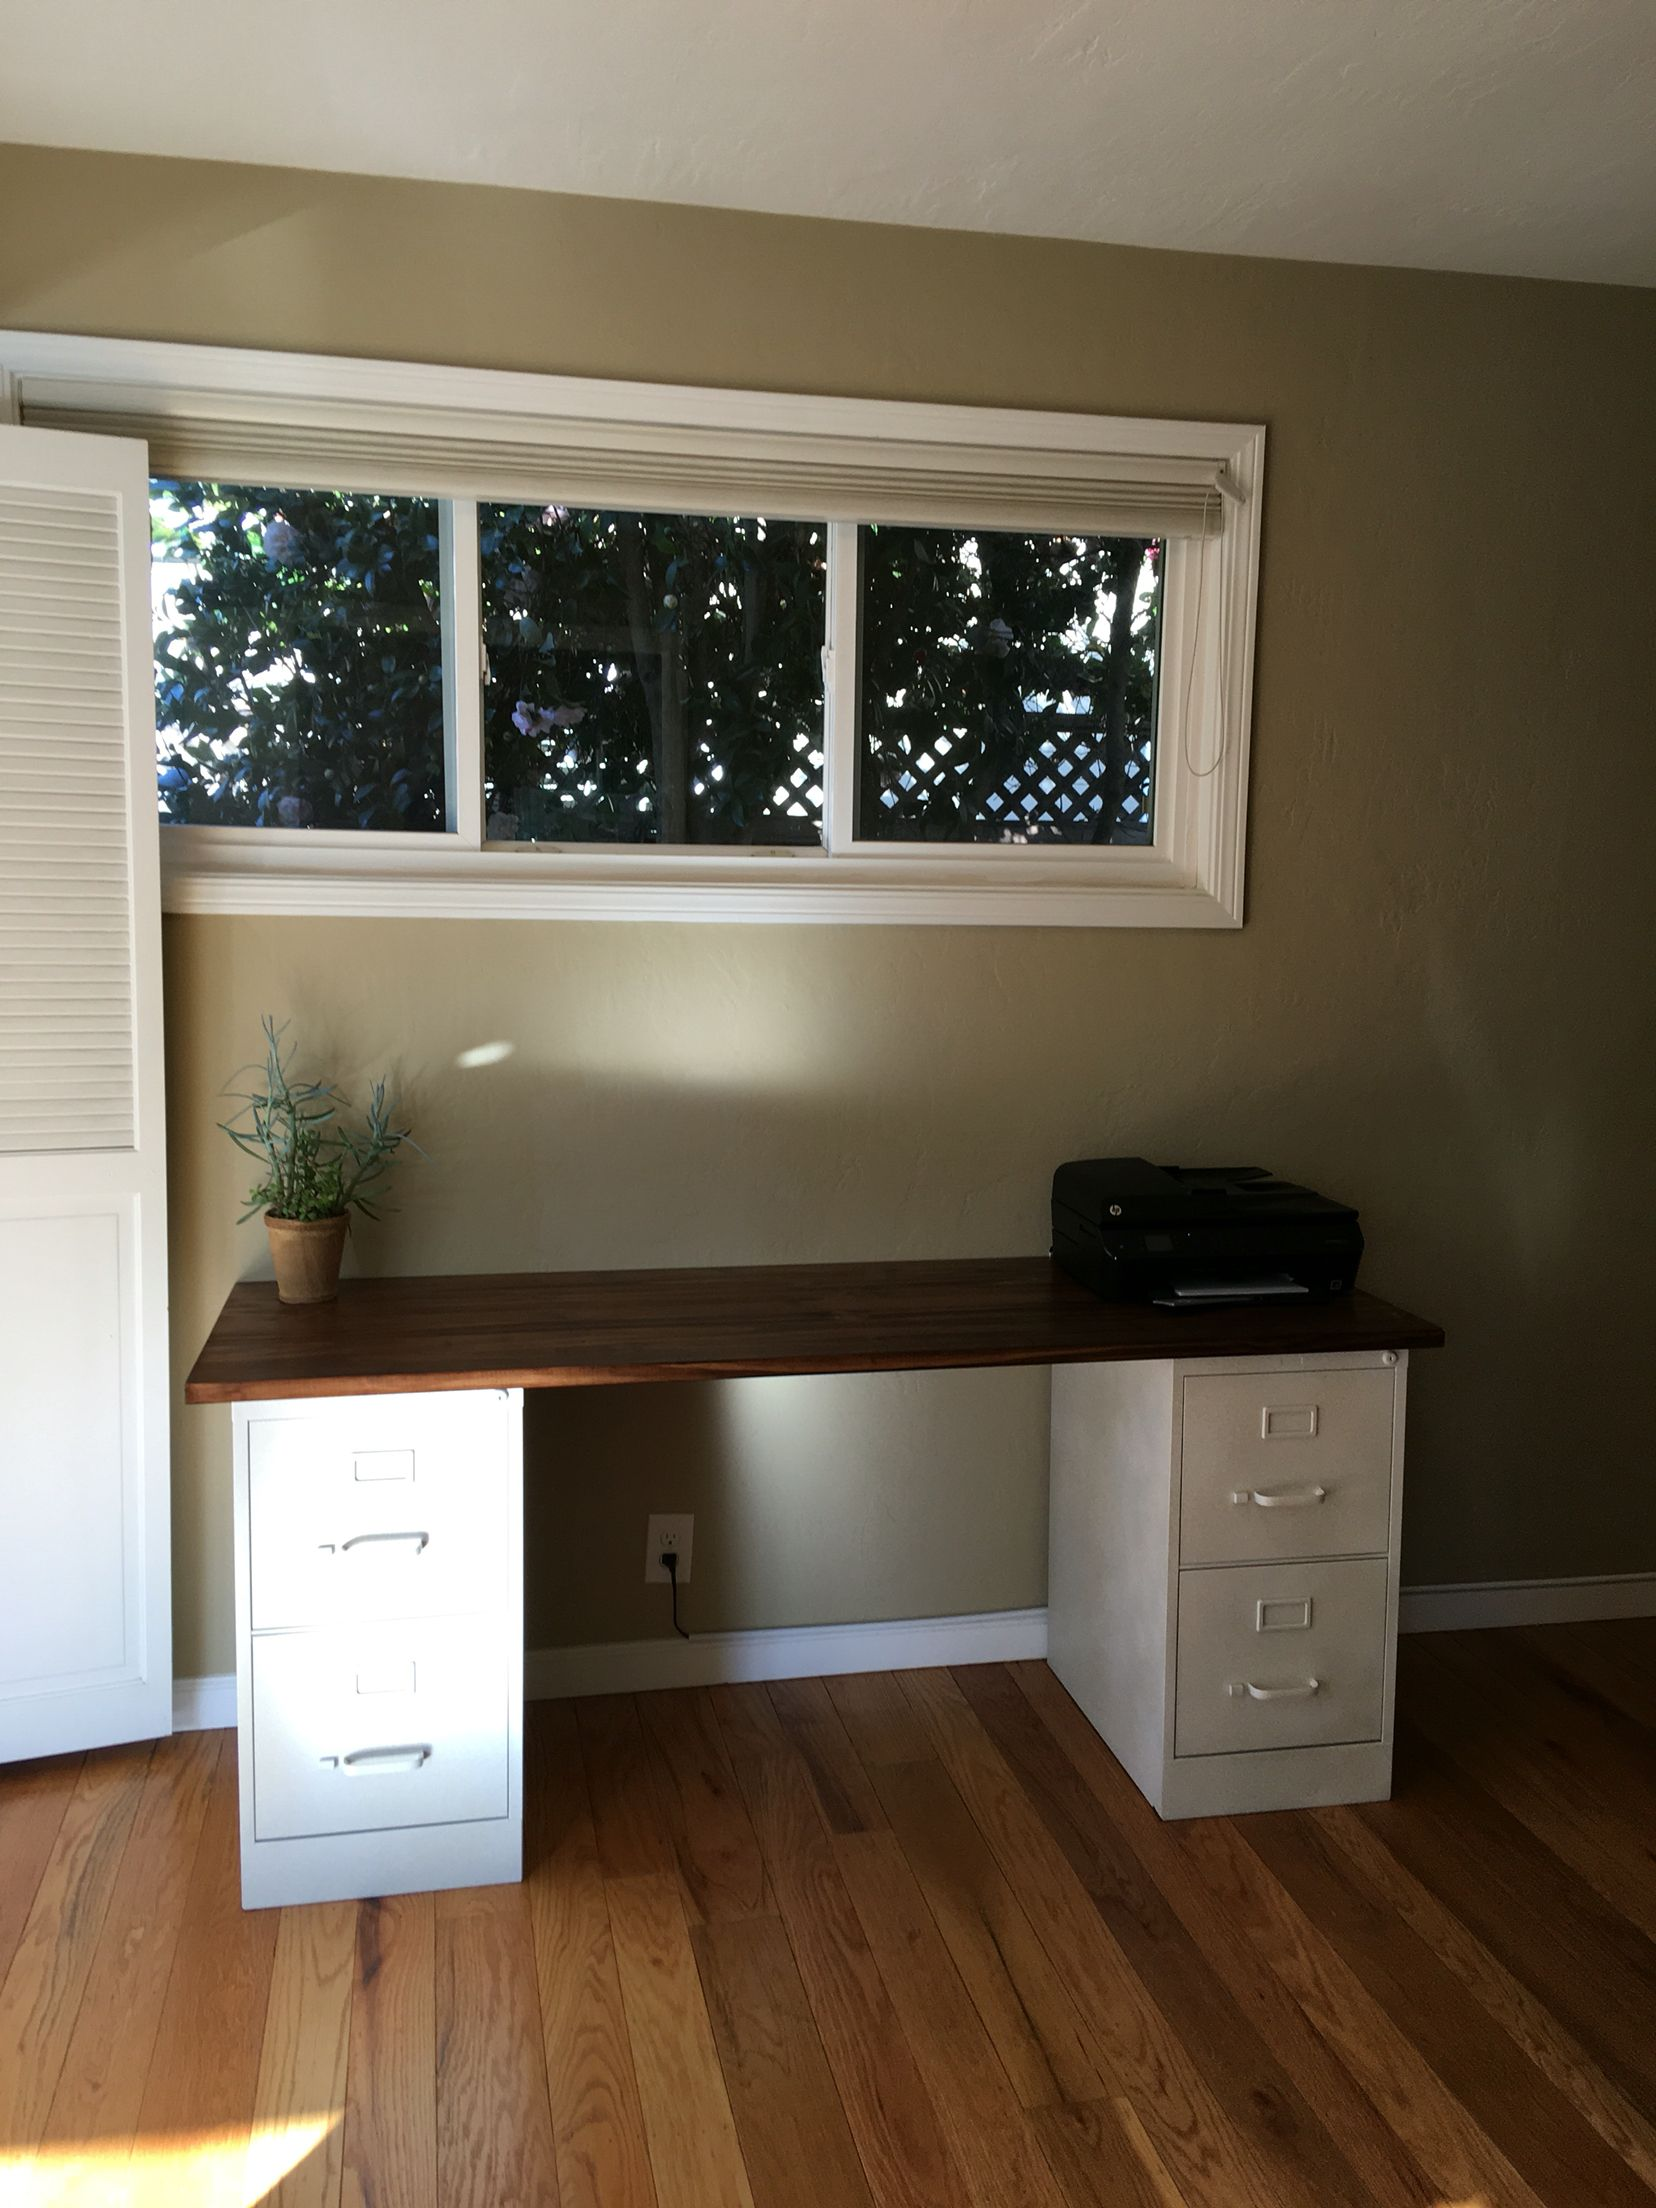 Diy Desk Made From Spray Painted Filing Cabinets With A